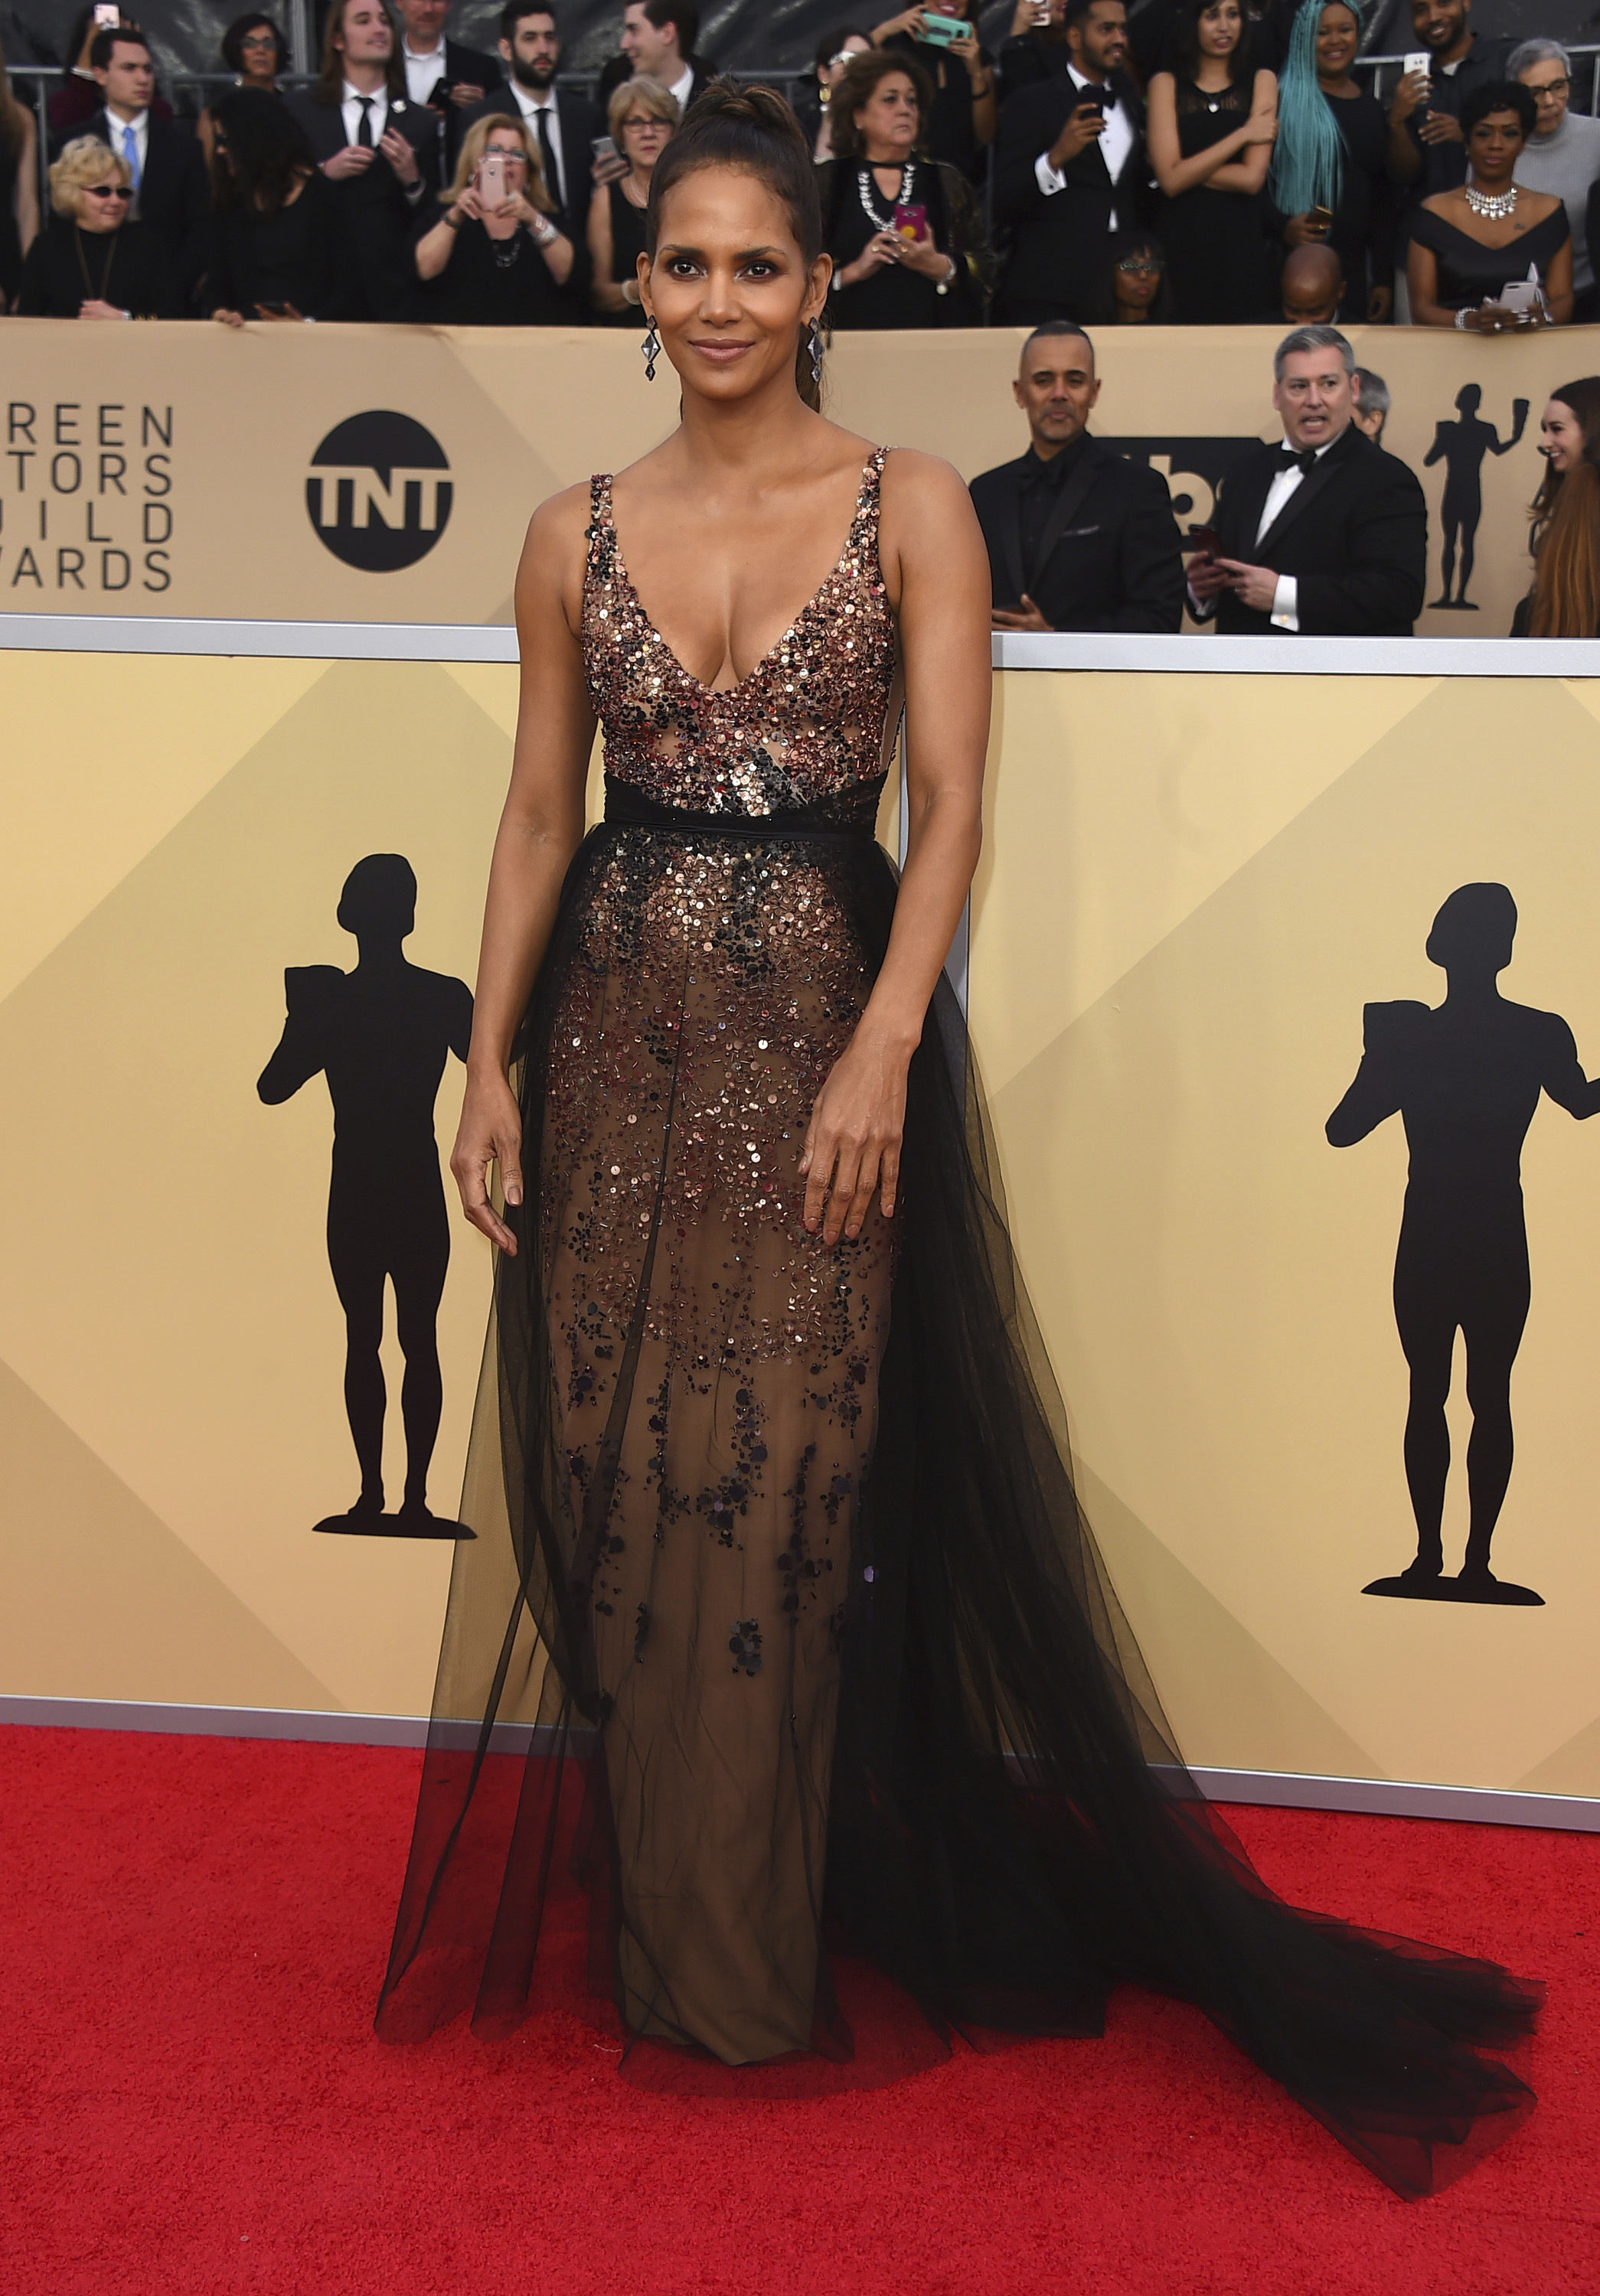 Halle Berry arrives at the 24th annual Screen Actors Guild Awards